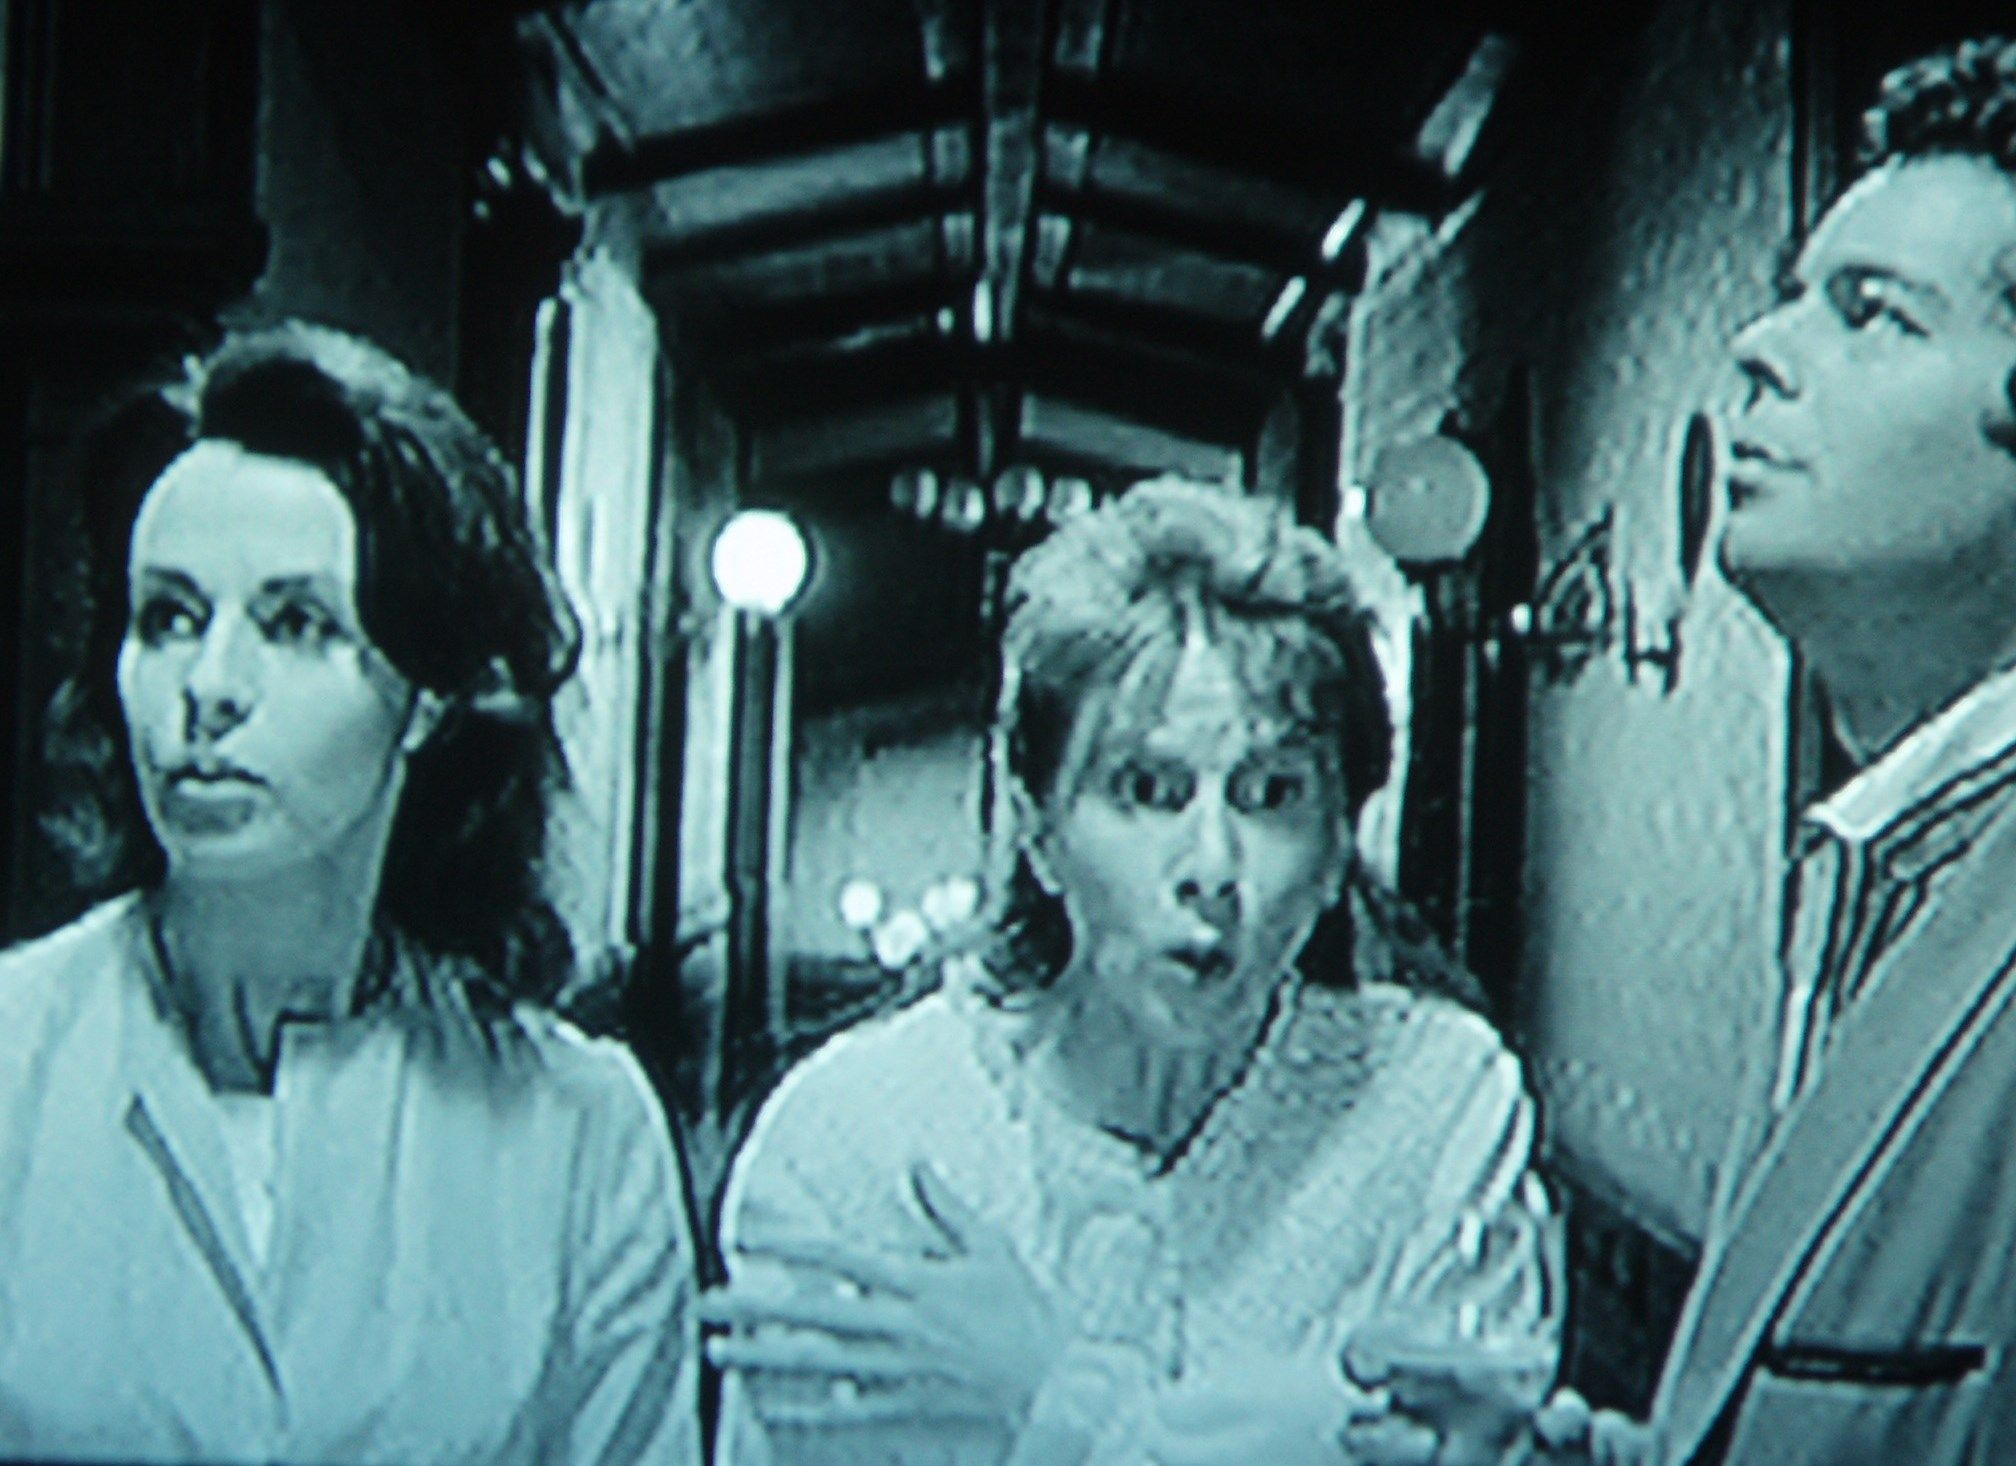 Theodora Eleanor And Luc Experience The Cold Spot Or Heart Of Hill House House On A Hill Julie Harris Claire Bloom